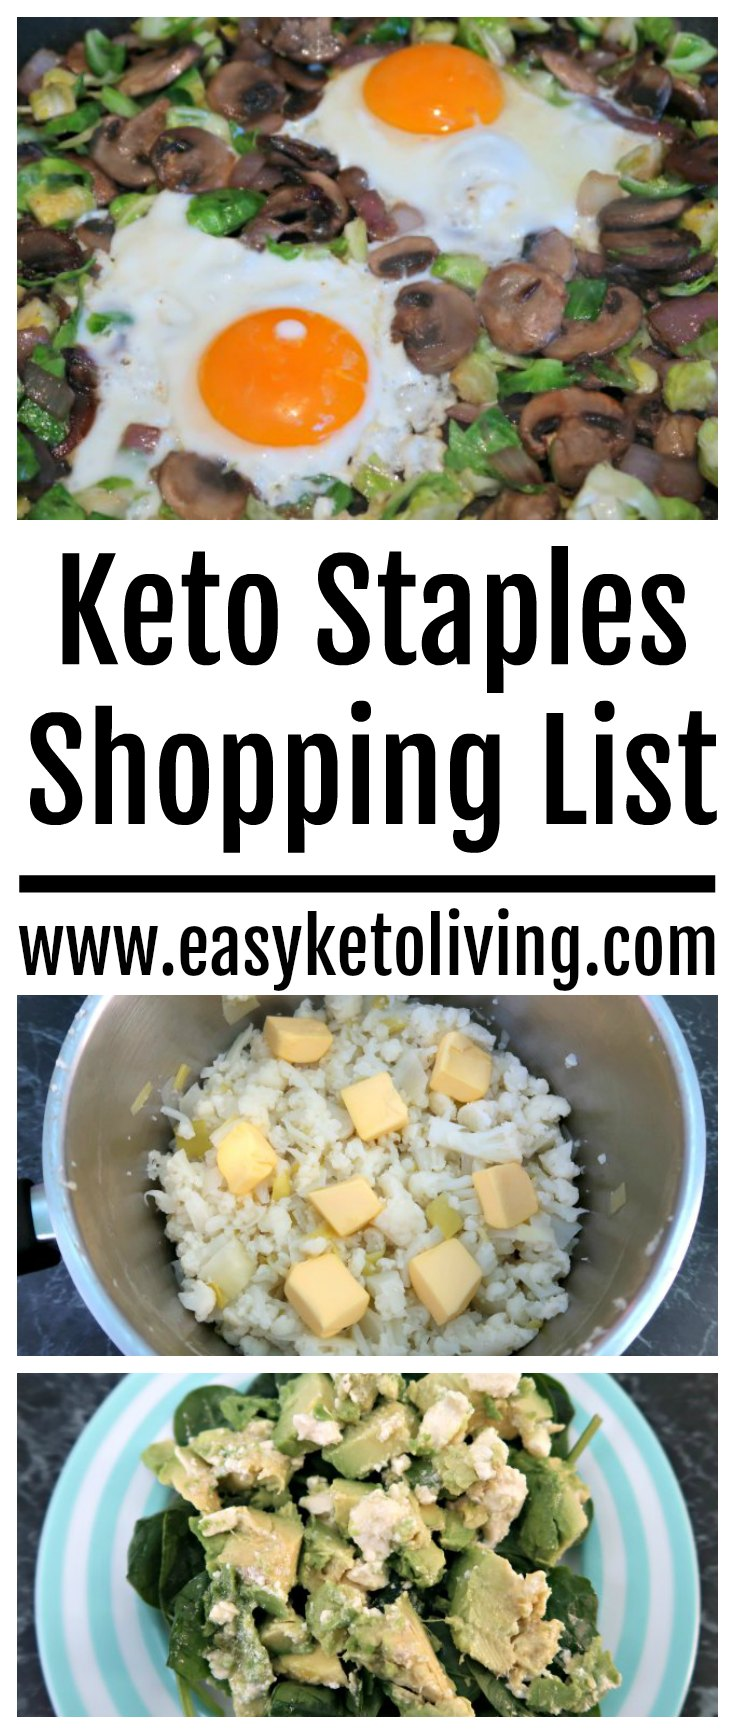 Keto Staples Shopping List - A List of Low Carb items that are essential for success with a Ketogenic Diet. Including a list of fats, proteins and carbs.